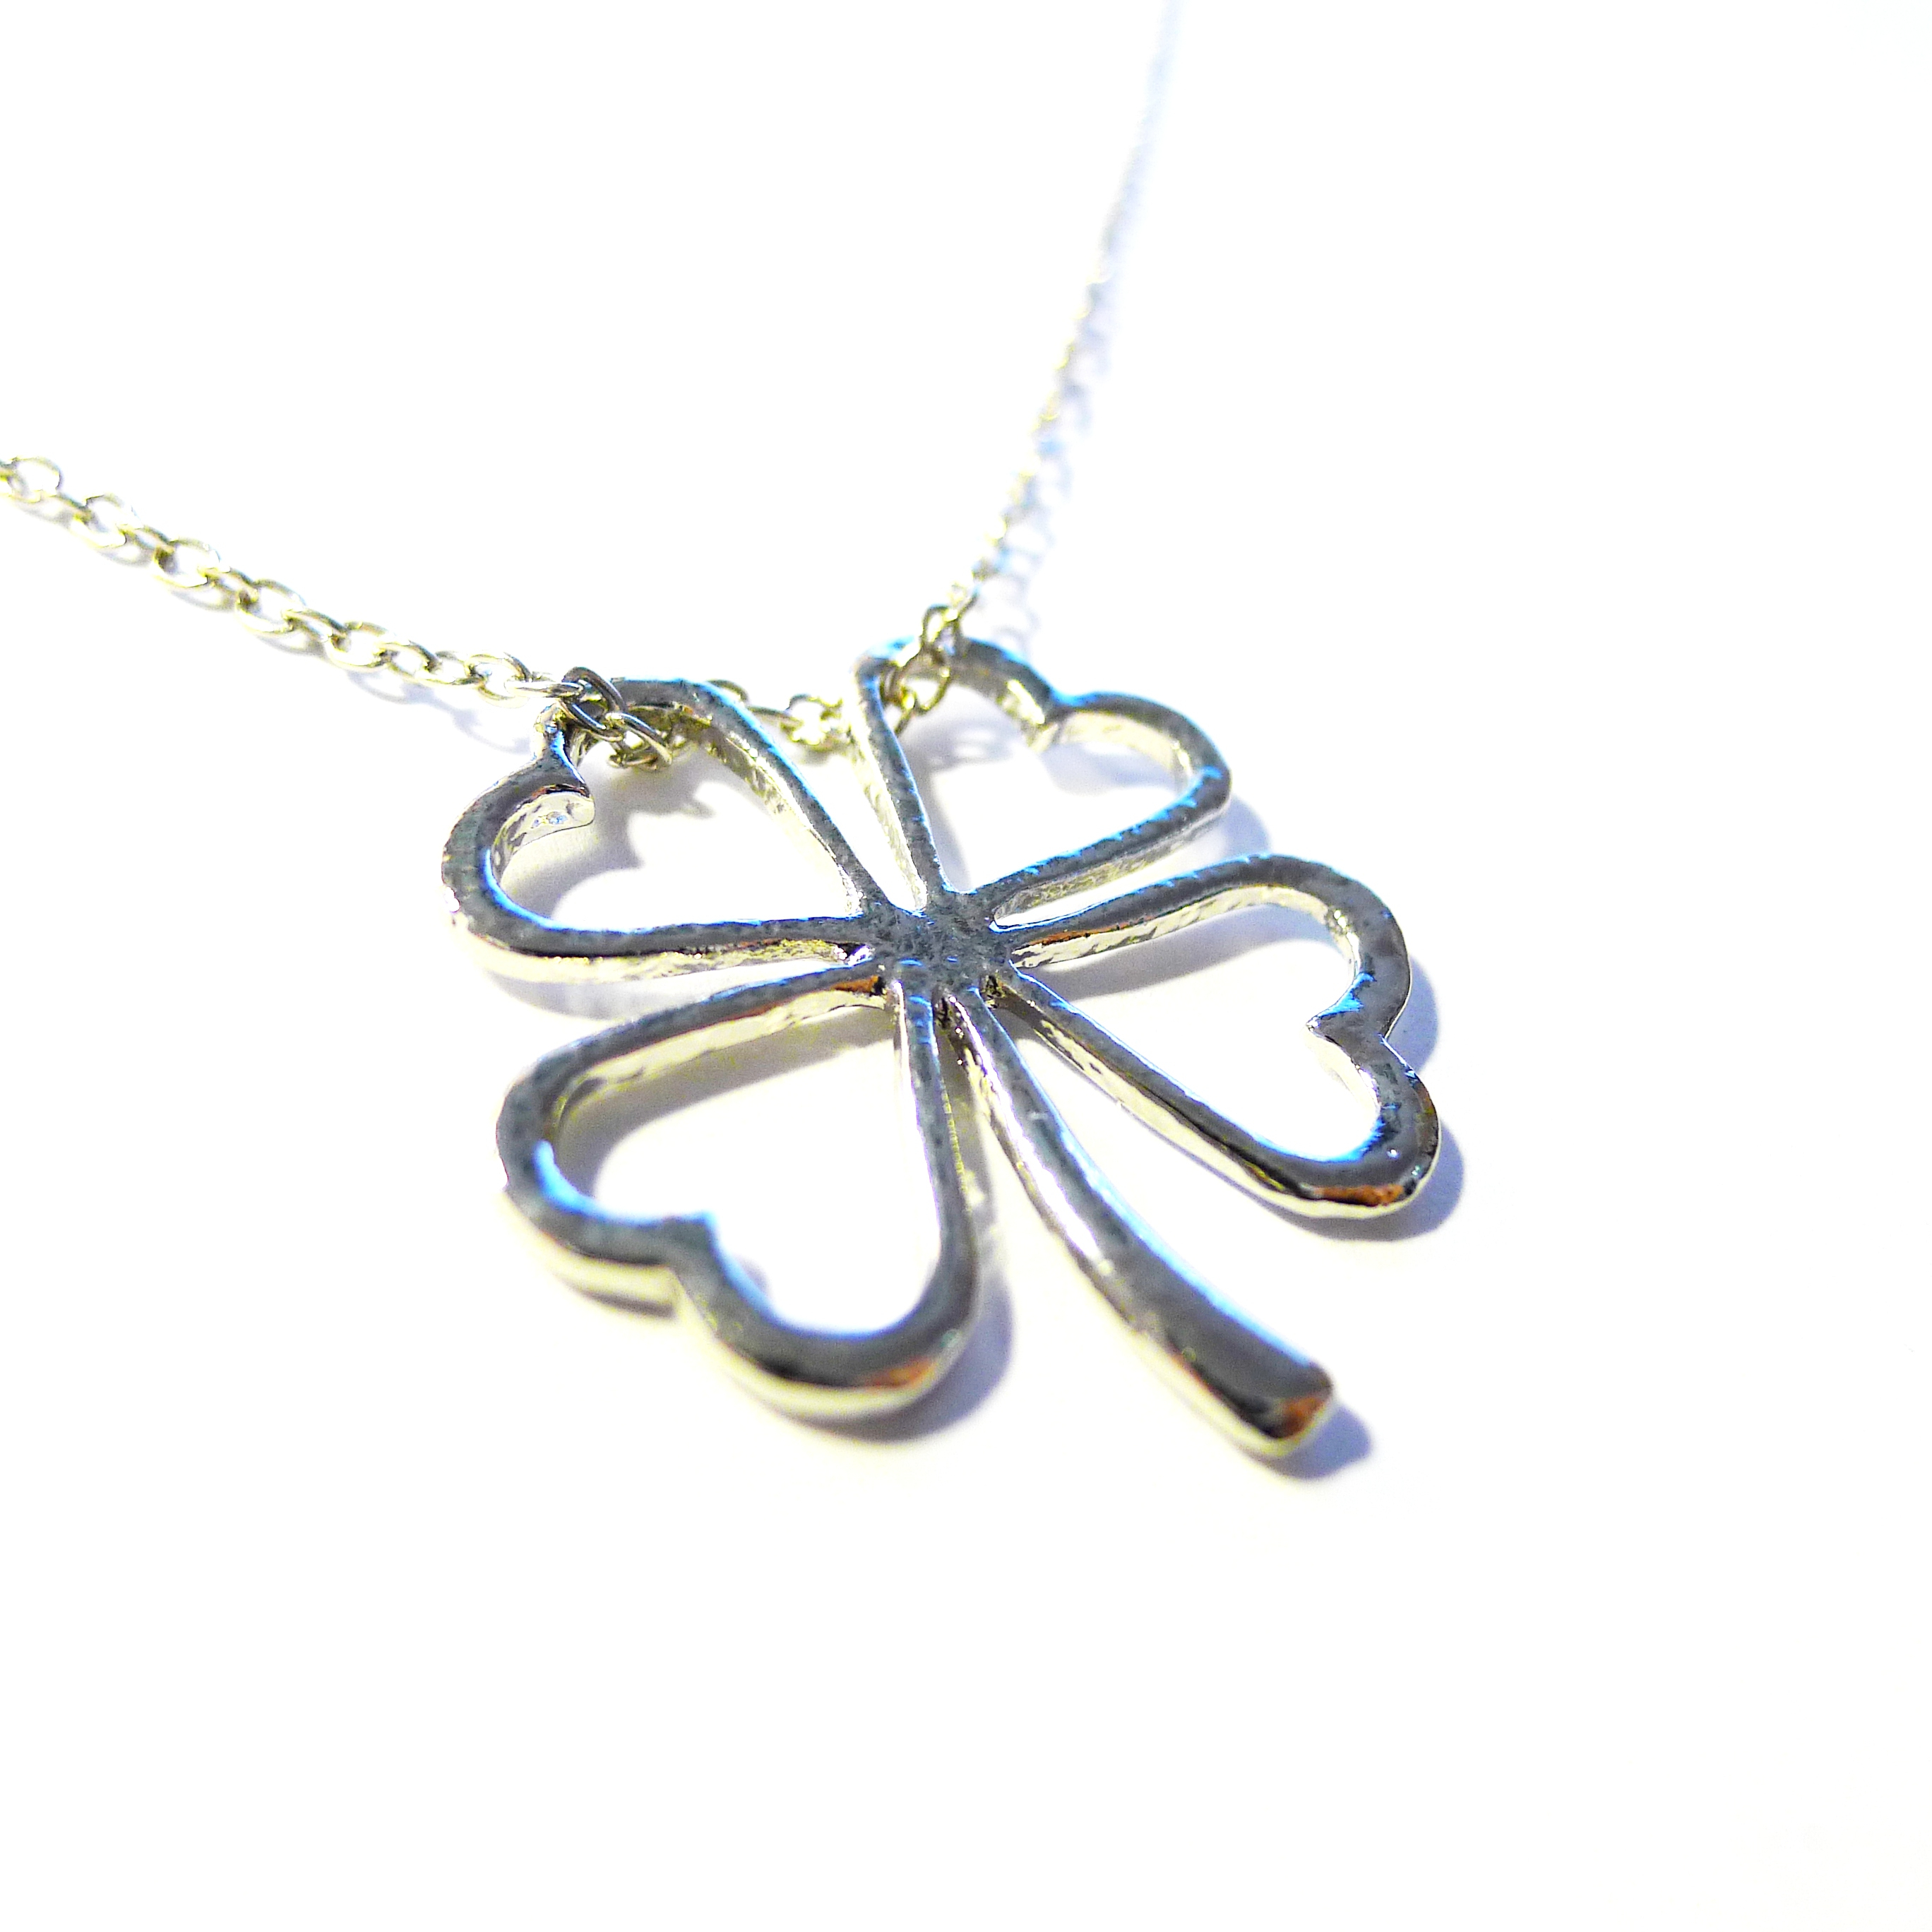 Elements: Lucky Four Leaf Clover Necklace From Bravelyfestyle Within 2020 Lucky Four Leaf Clover Locket Element Necklaces (Gallery 1 of 25)